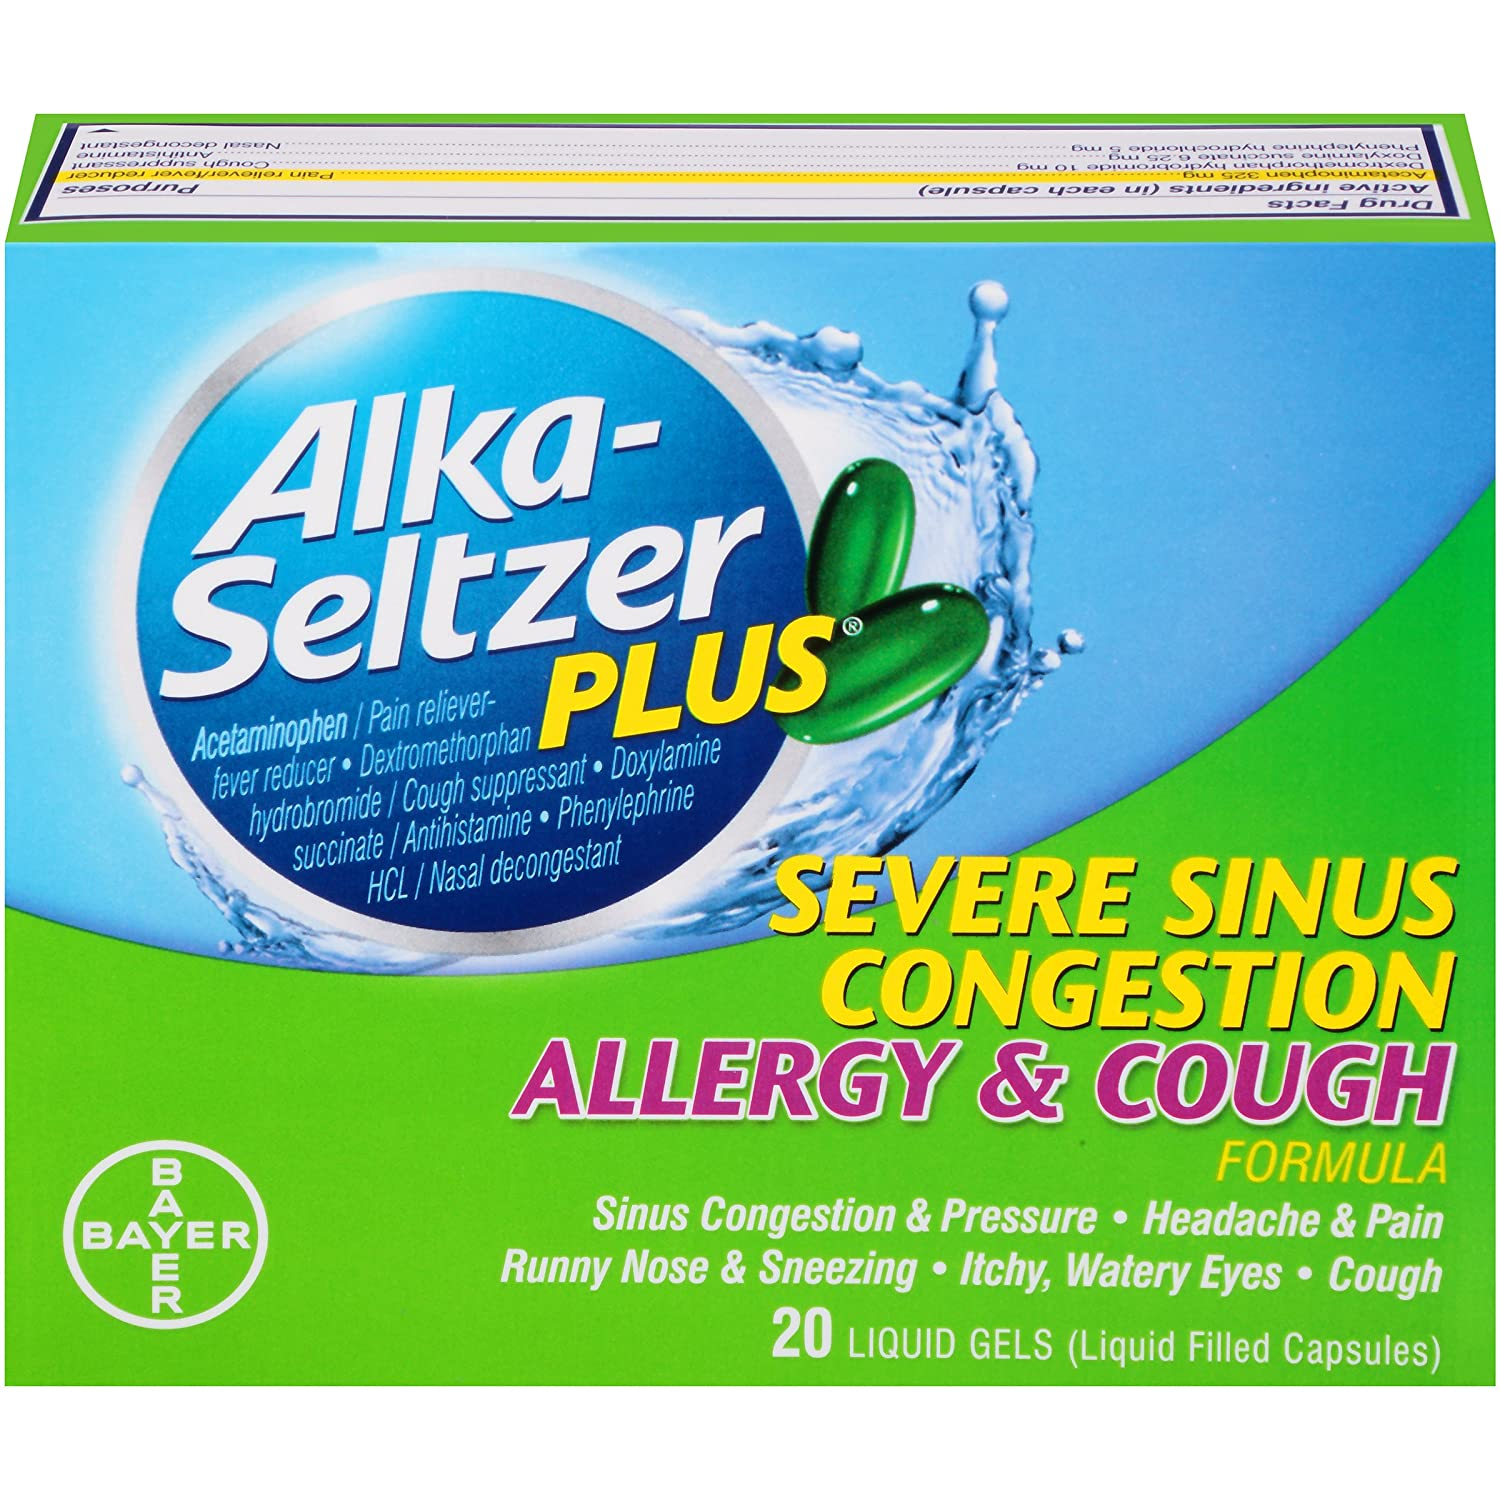 amazon com alka seltzer plus severe sinus congestion allergy and cough liquid gels 20 count health personal care